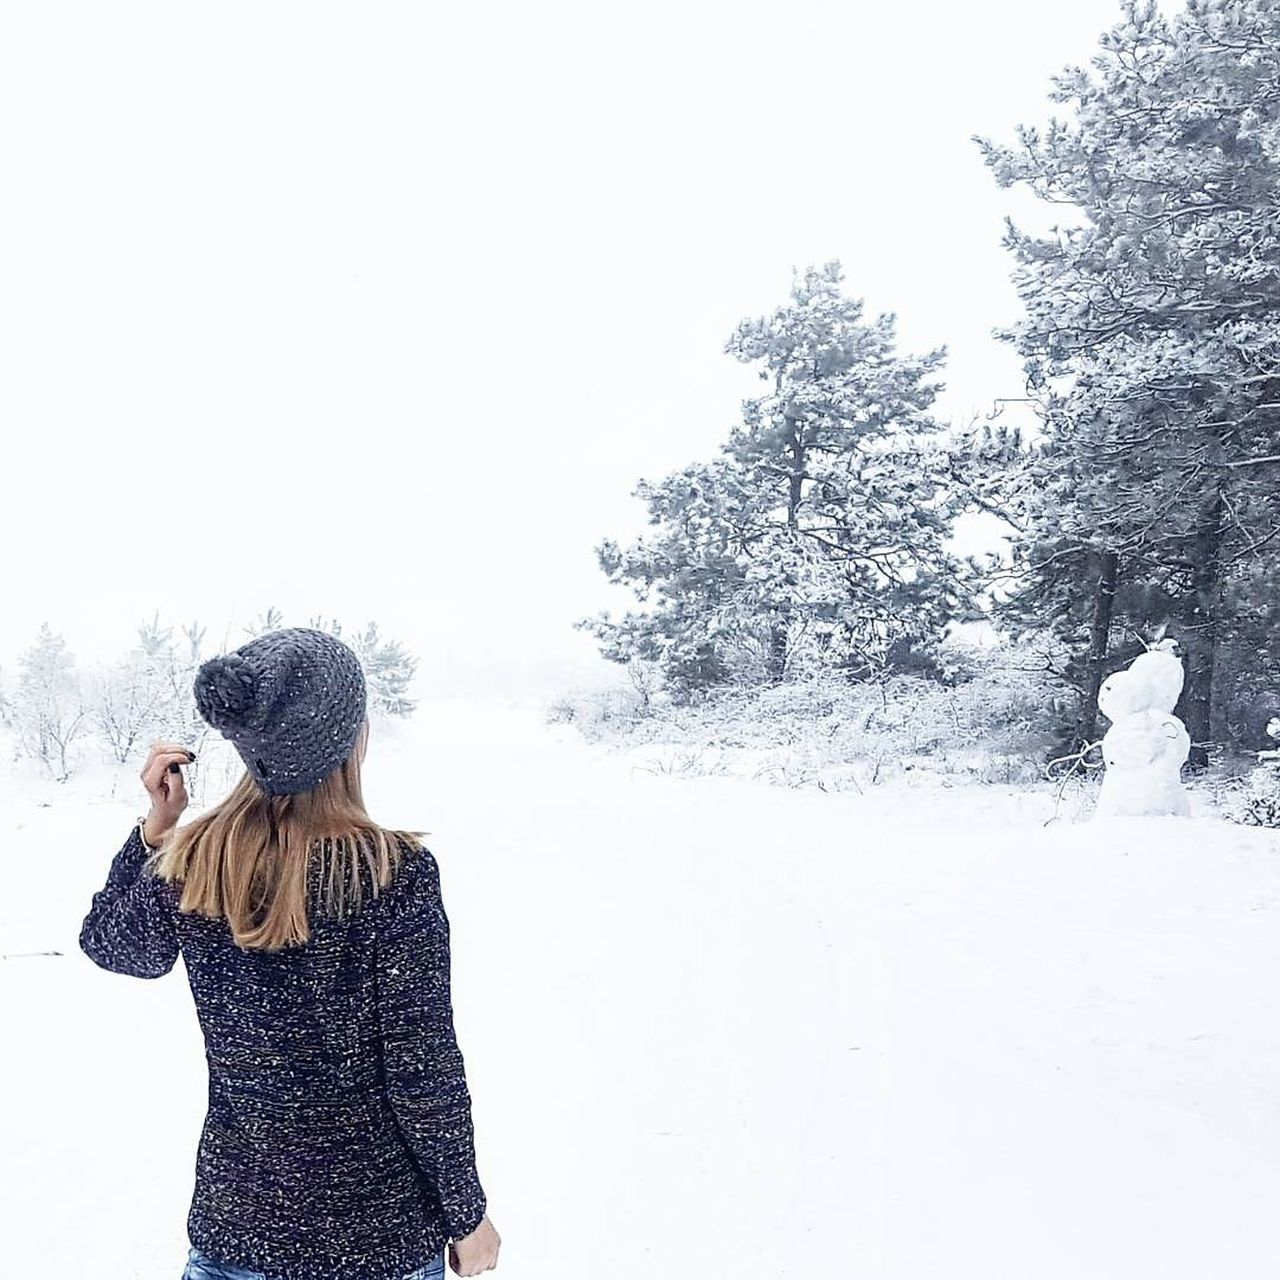 winter, snow, cold temperature, leisure activity, nature, tree, warm clothing, one person, outdoors, day, real people, standing, beauty in nature, lifestyles, clear sky, women, young women, young adult, sky, people